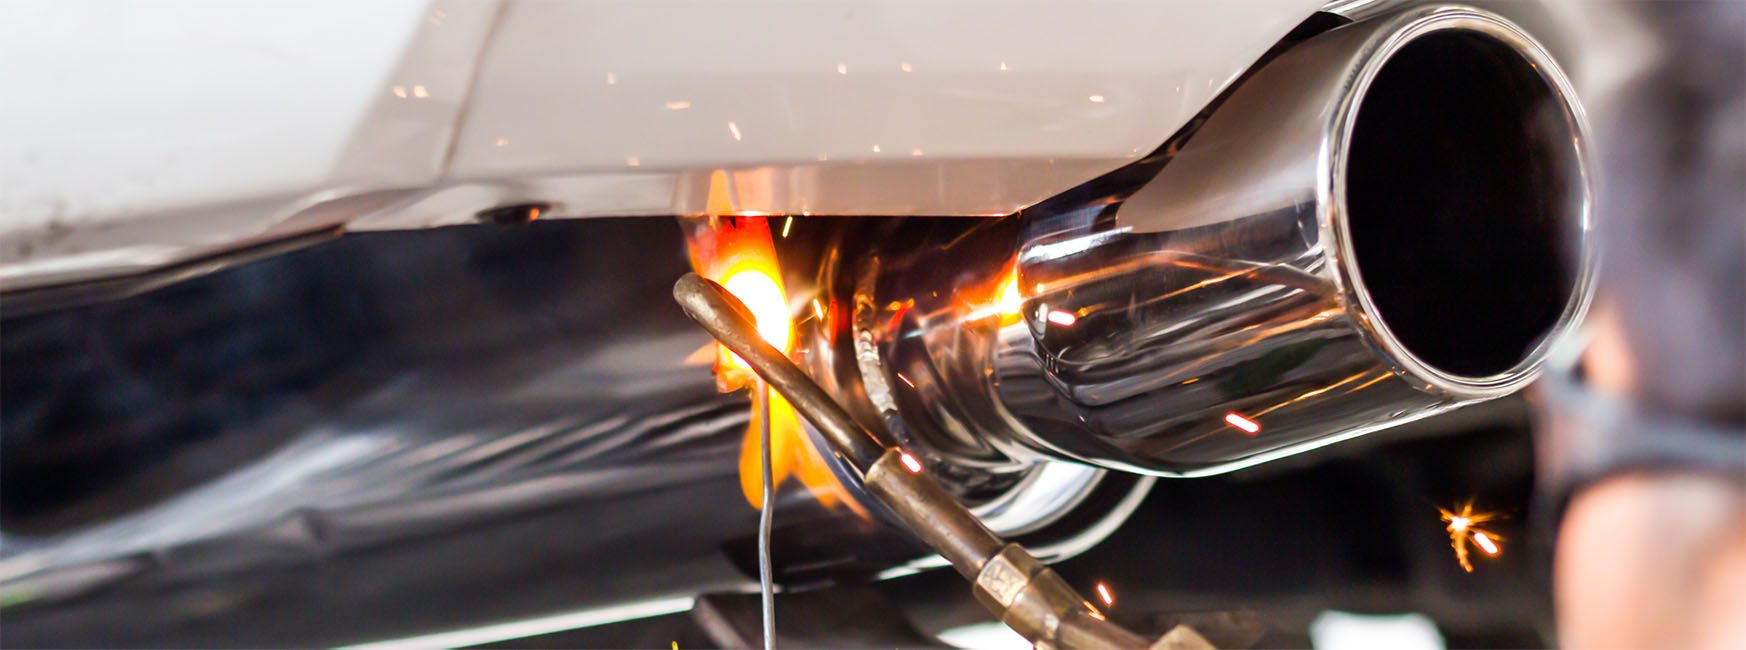 custom muffler installation with flame at denver based buds muffler service